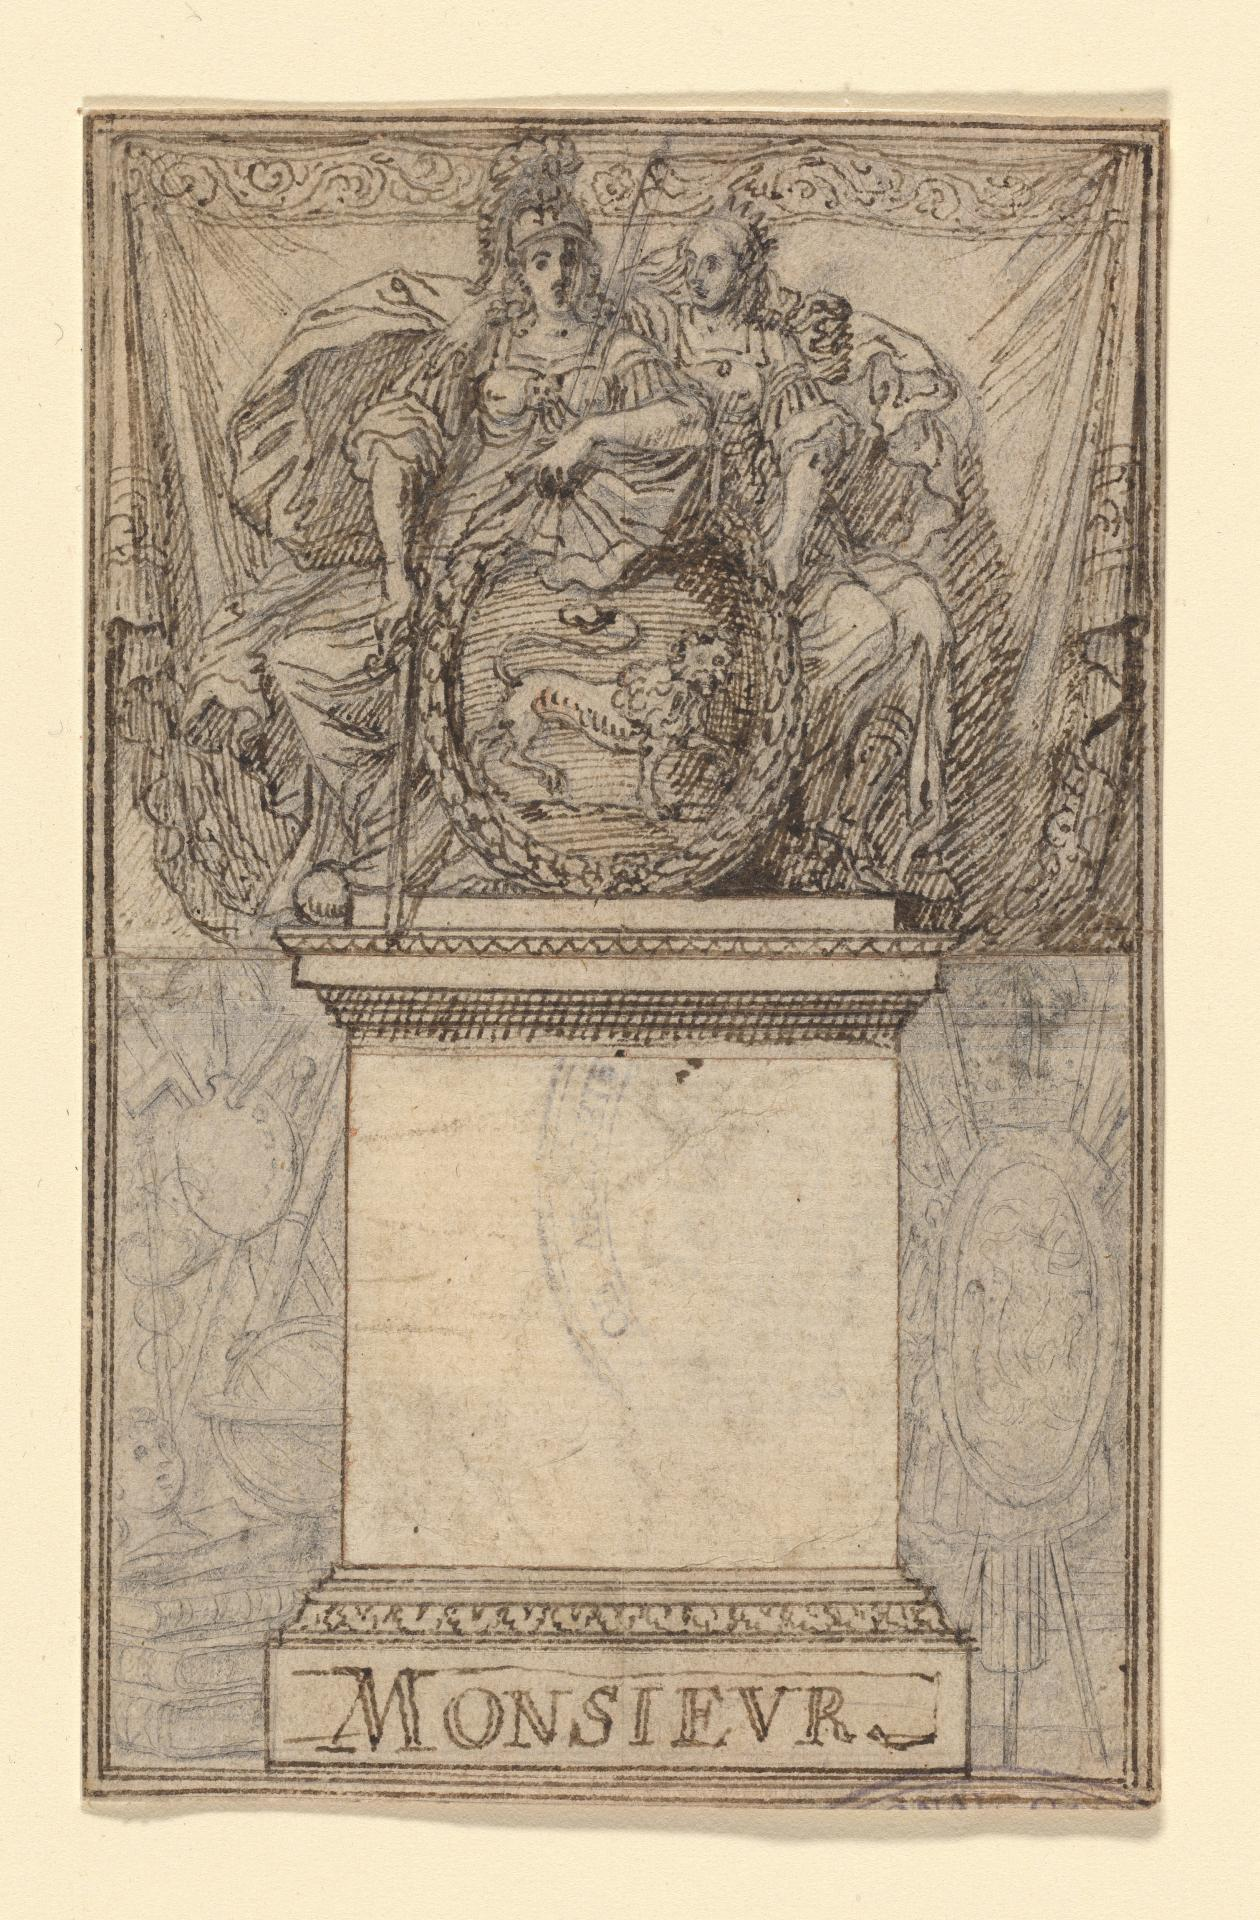 Study for an engraved bookplate